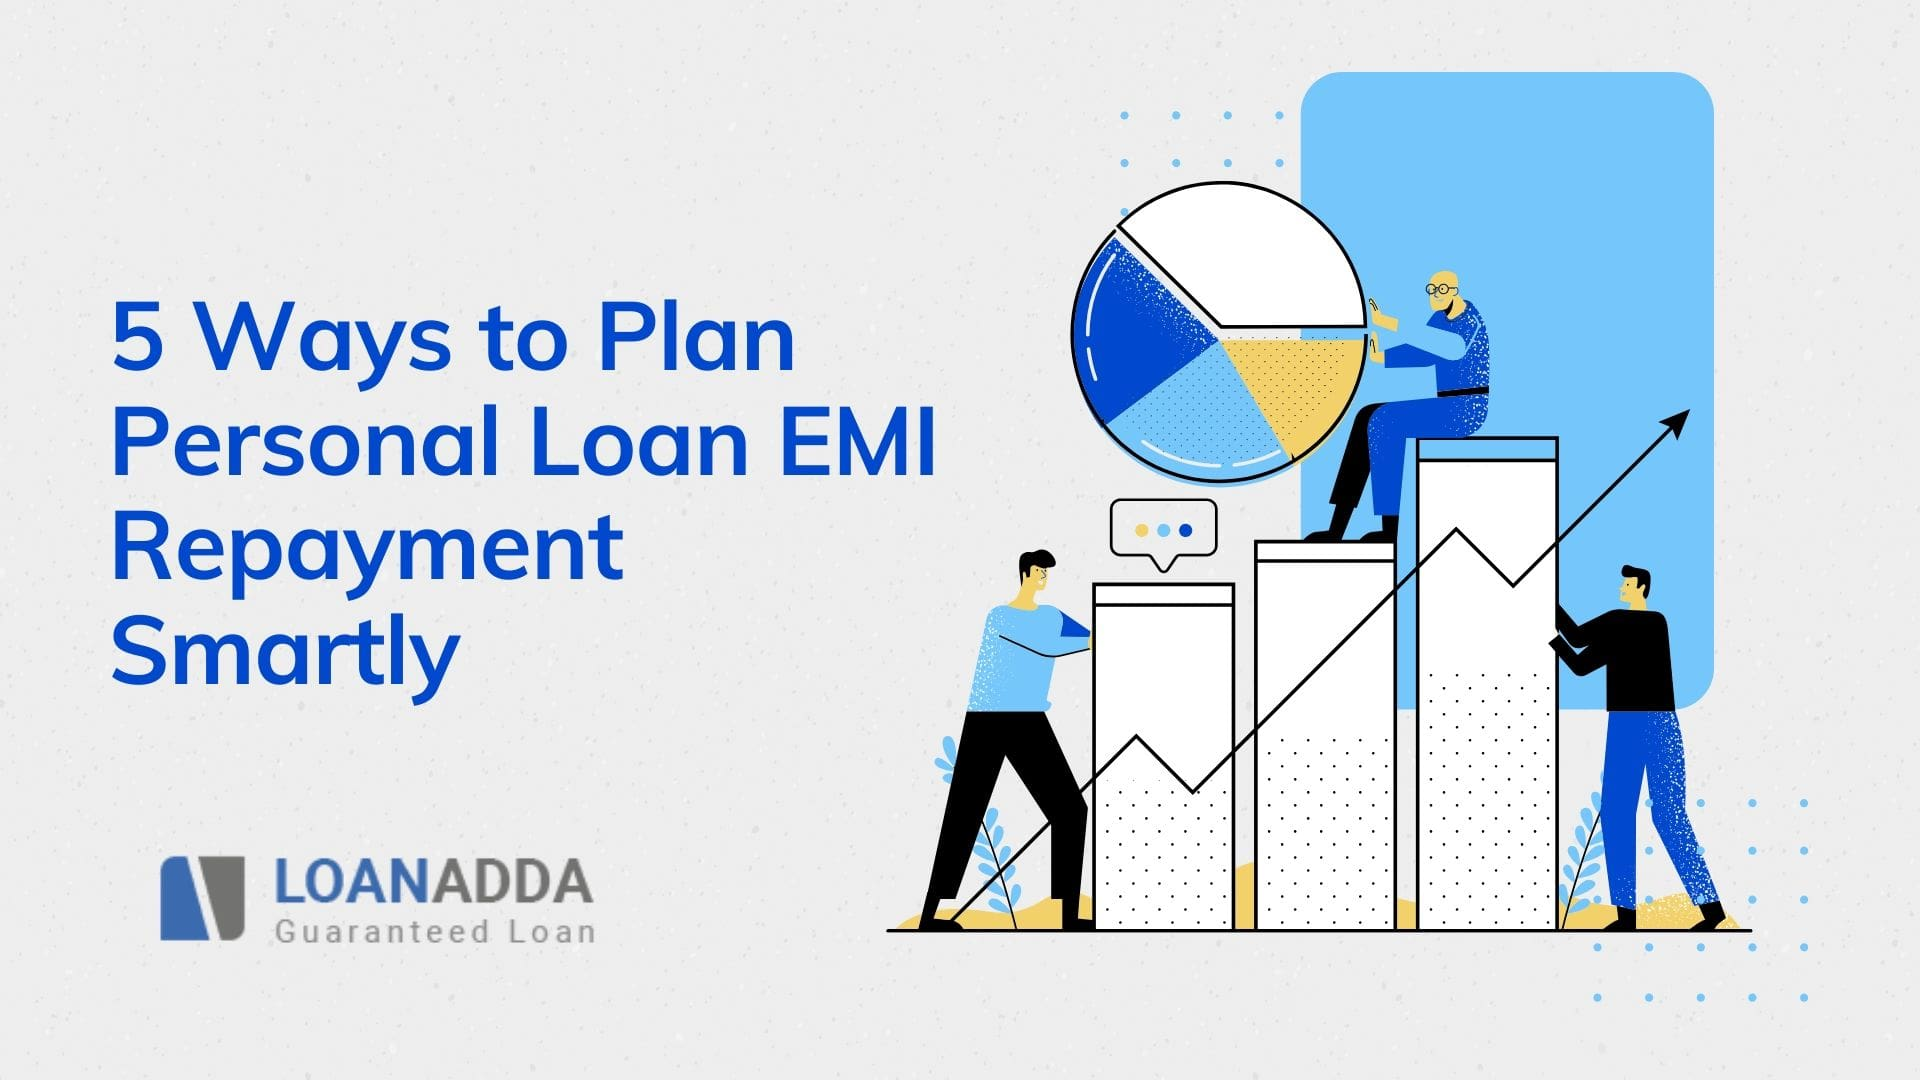 5 Ways to Plan Personal Loan EMI Repayment Smartly